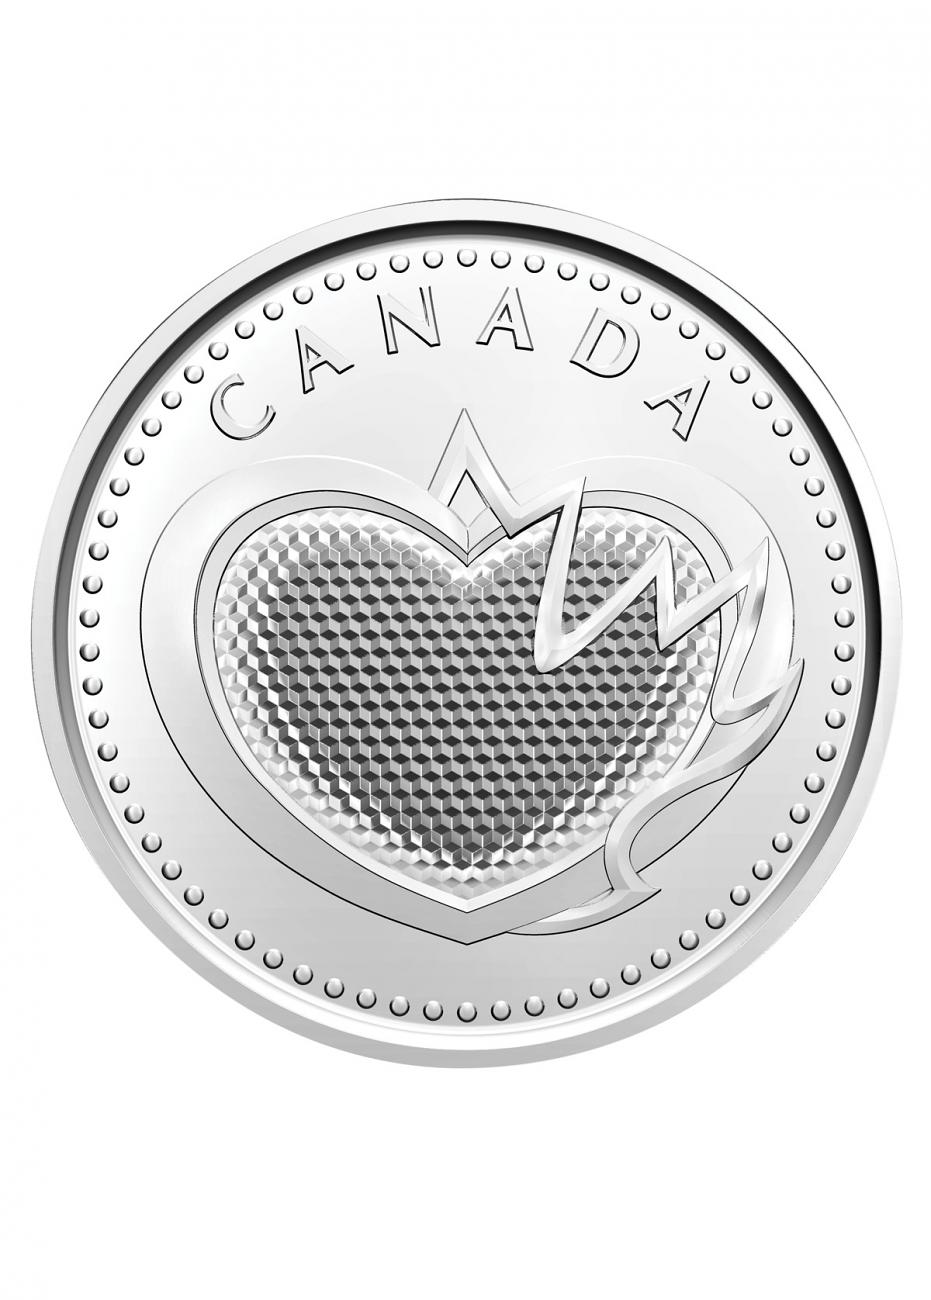 2020 Canada Recognition Medal GEM BU OGP